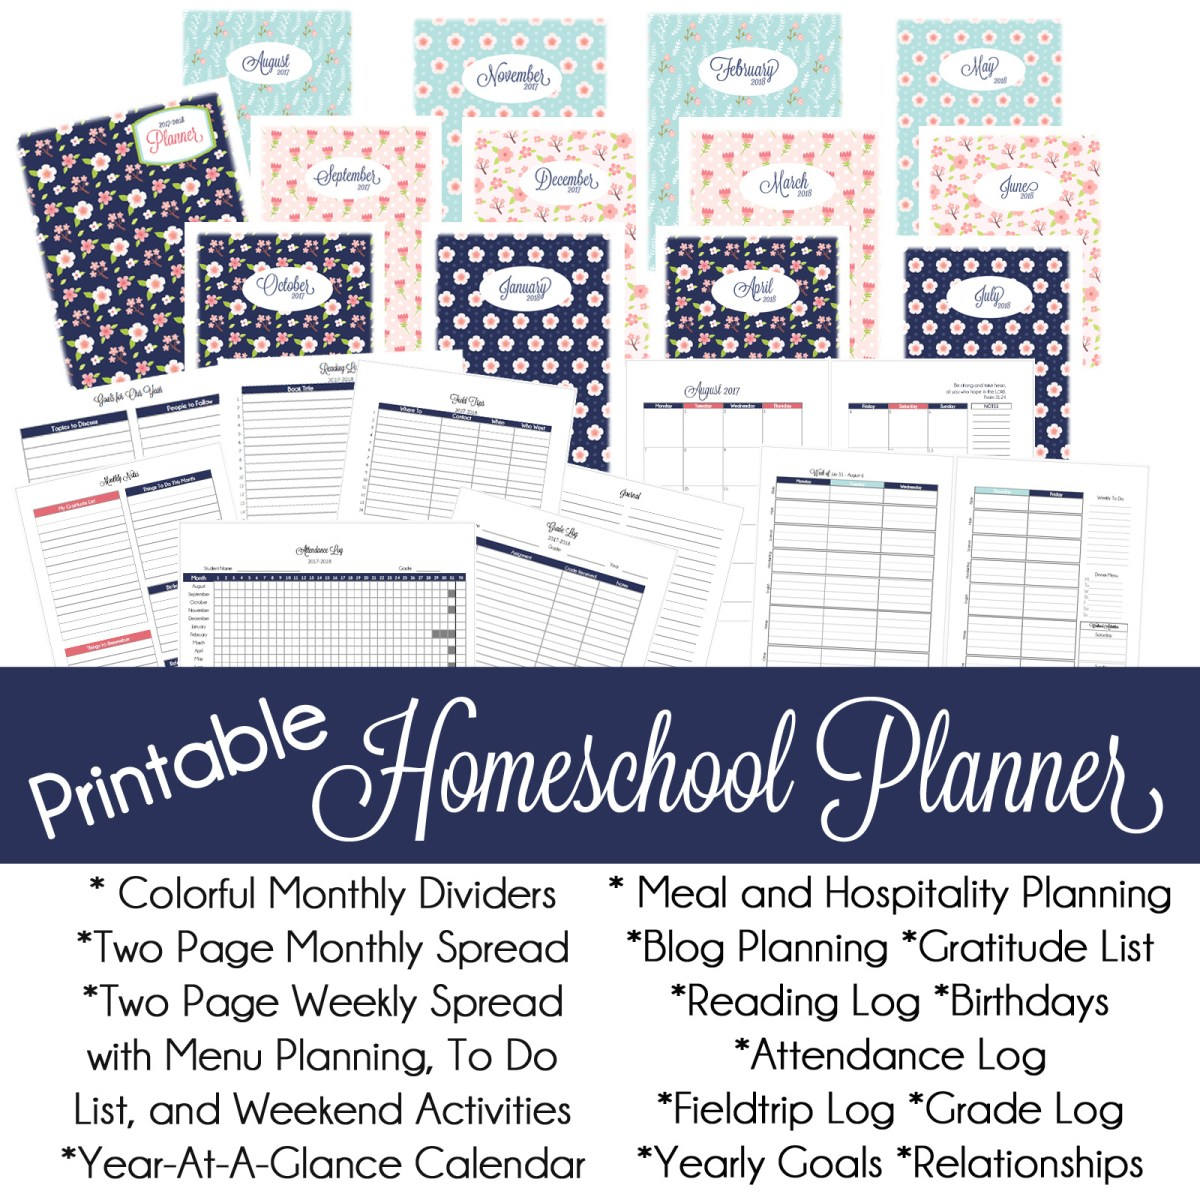 Homeschool Planner 2017-2018